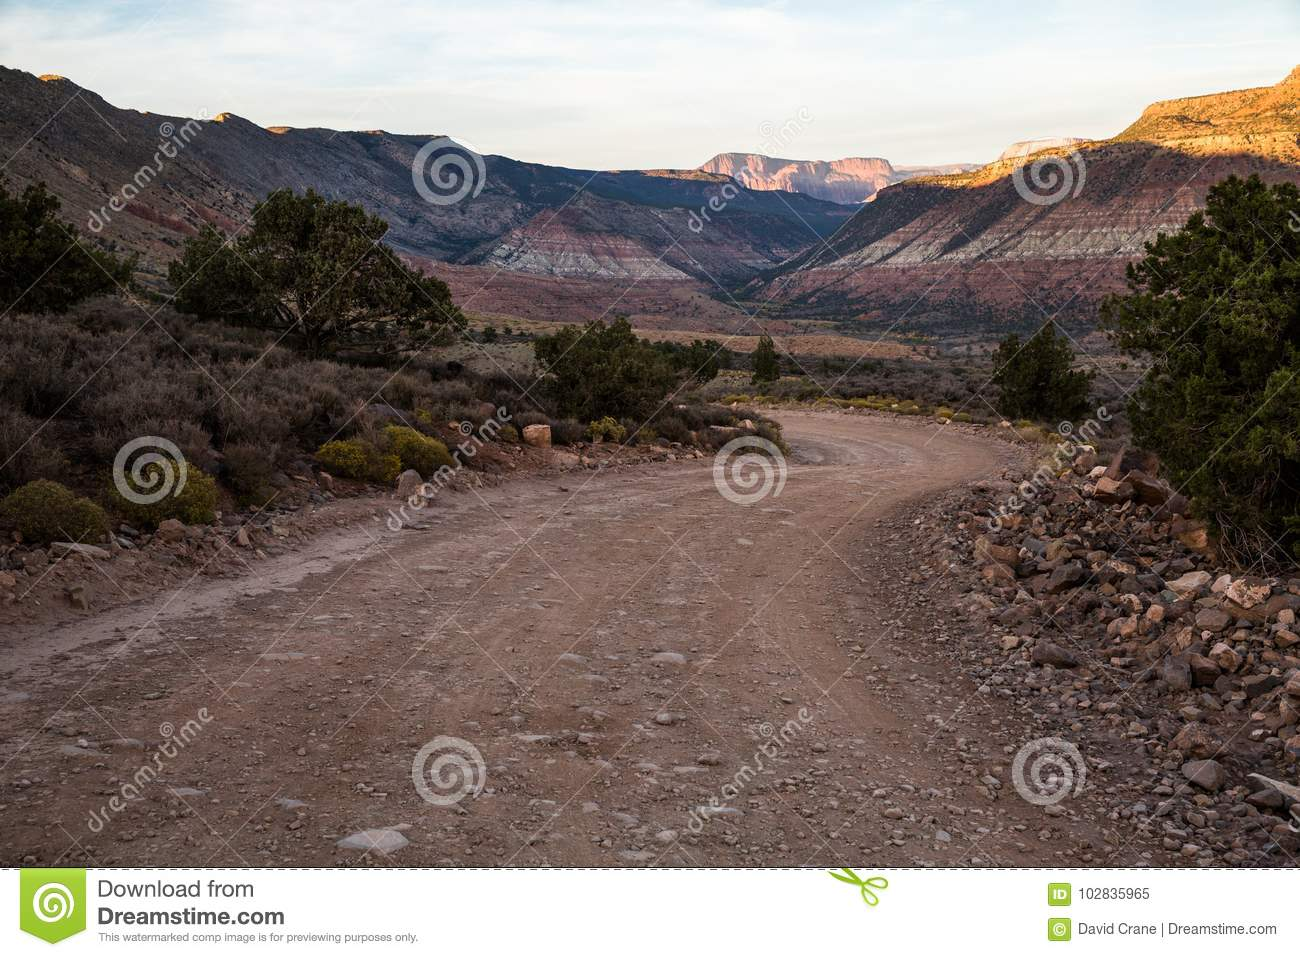 Winding road in shadow at sunset through the desert of Southern